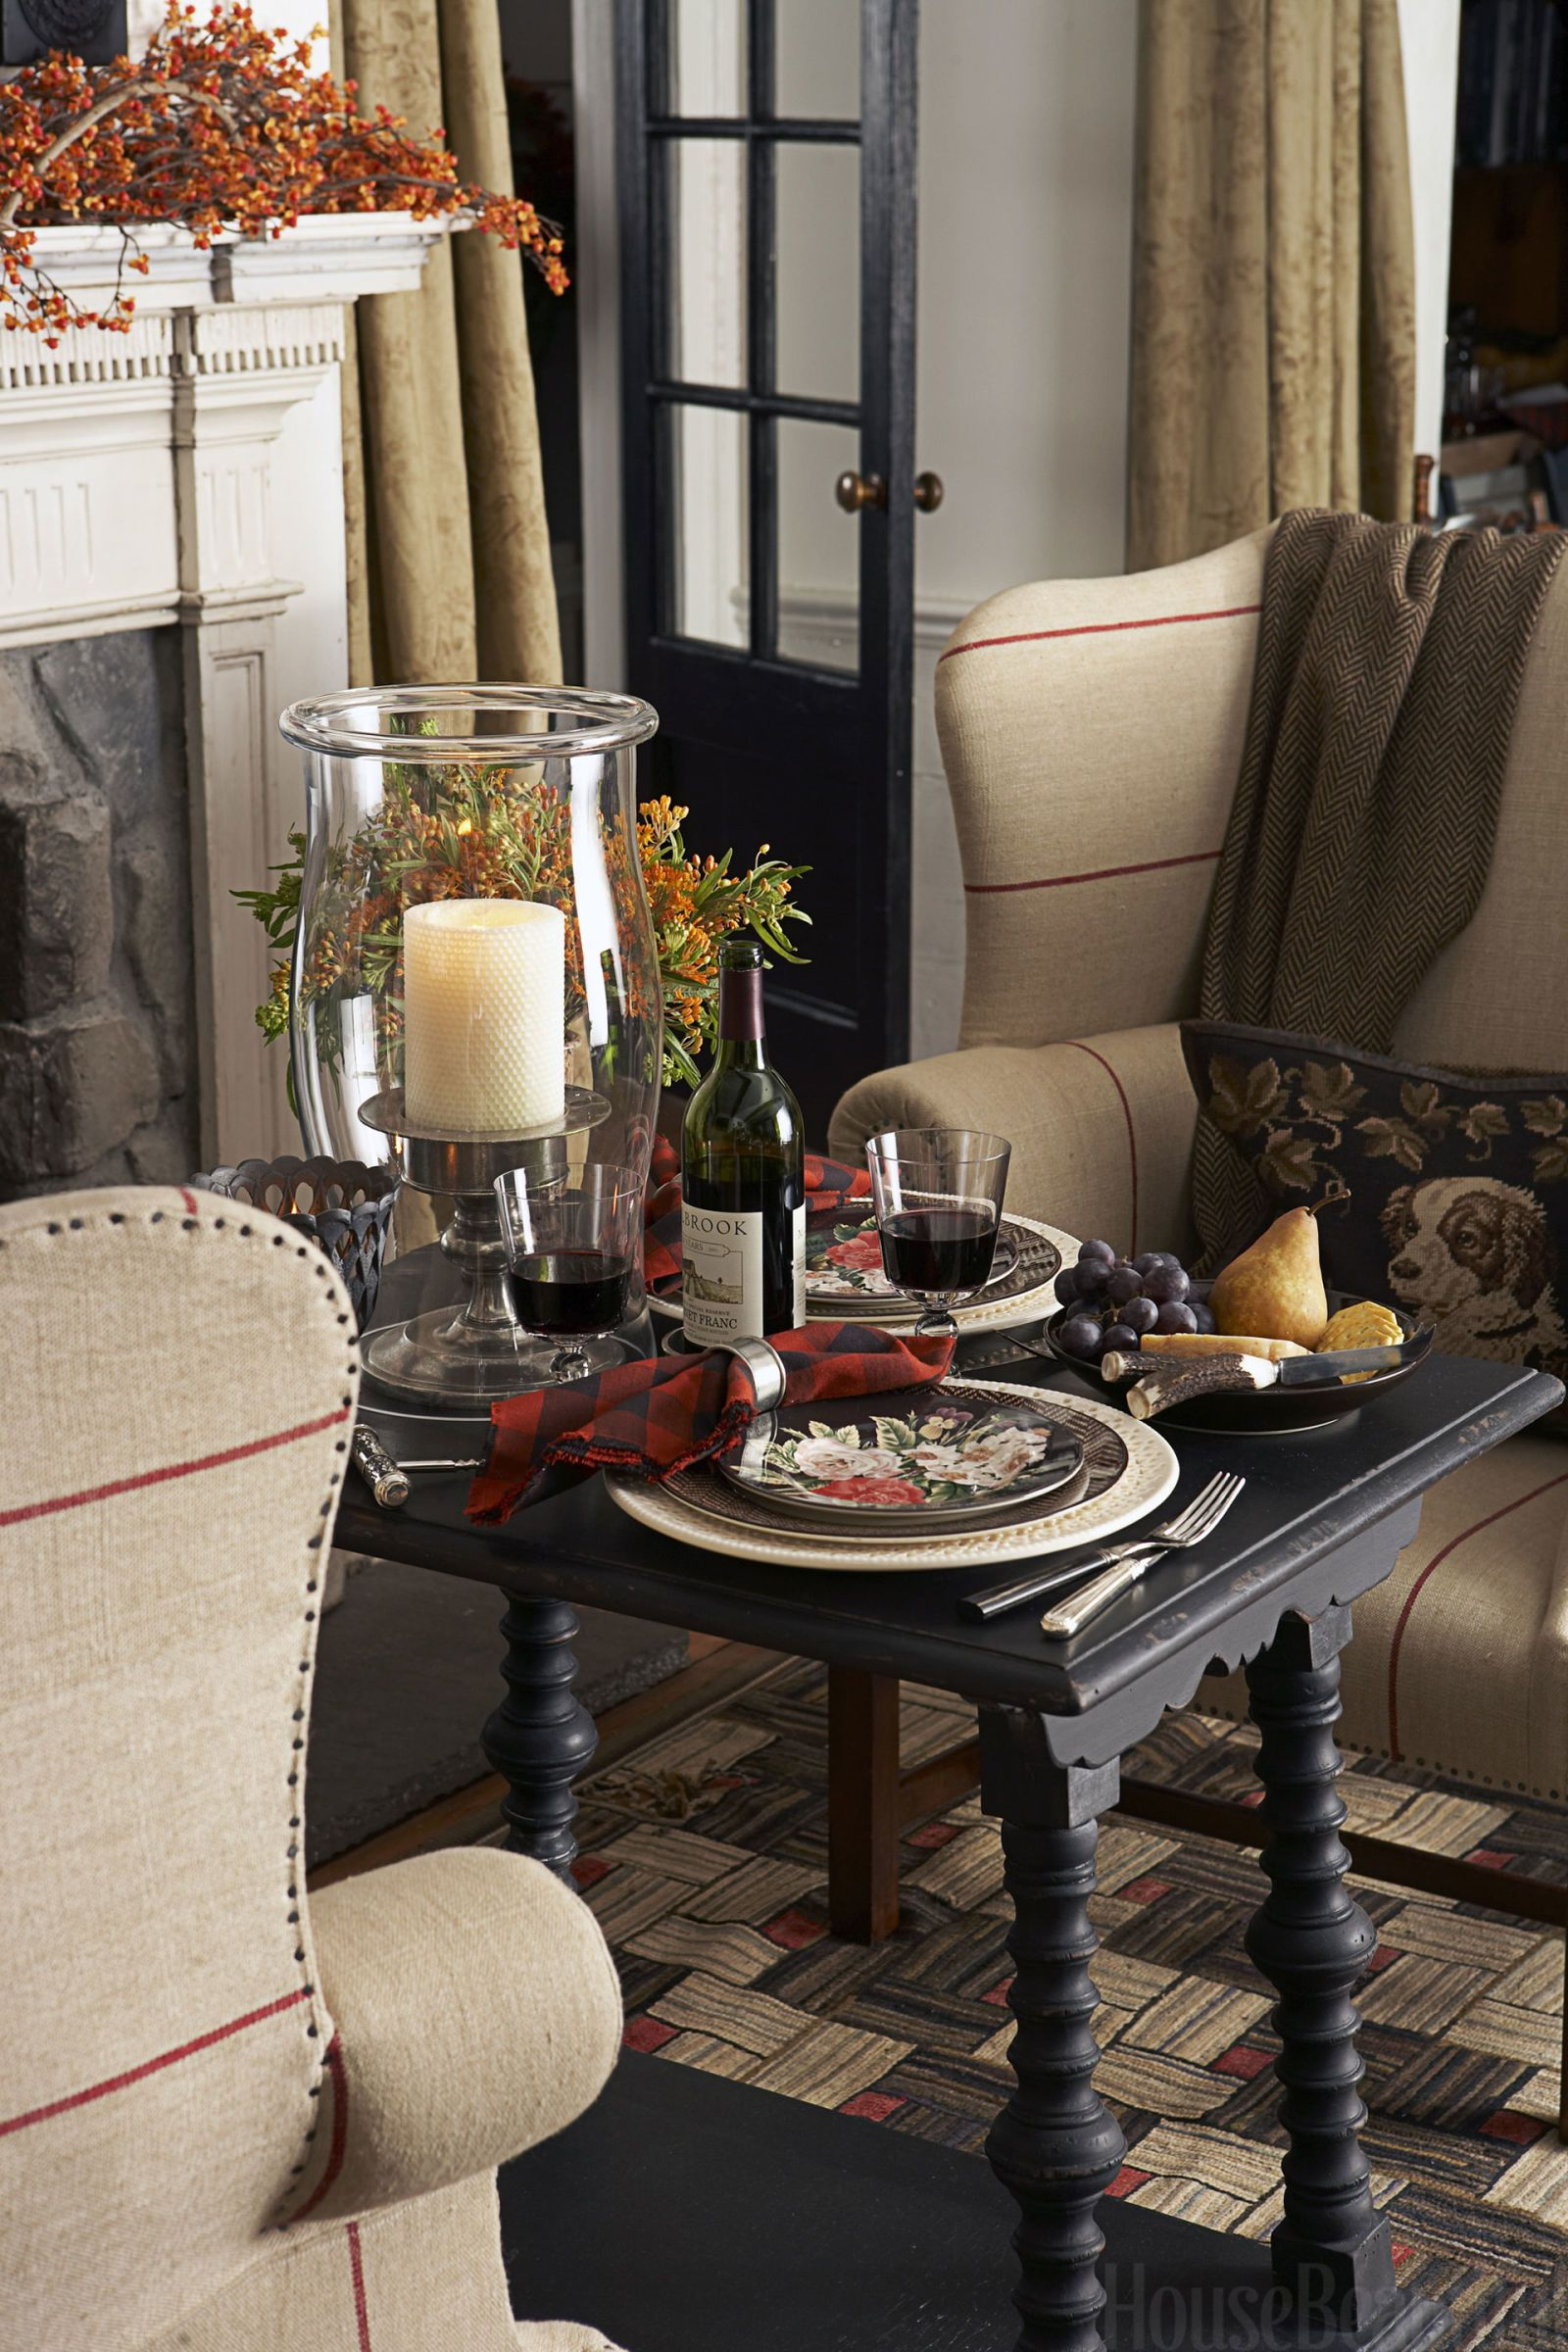 Creative Ways To Decorate Your Table For Your Next Big Dinner Fall Home Decor Decor Home Decor